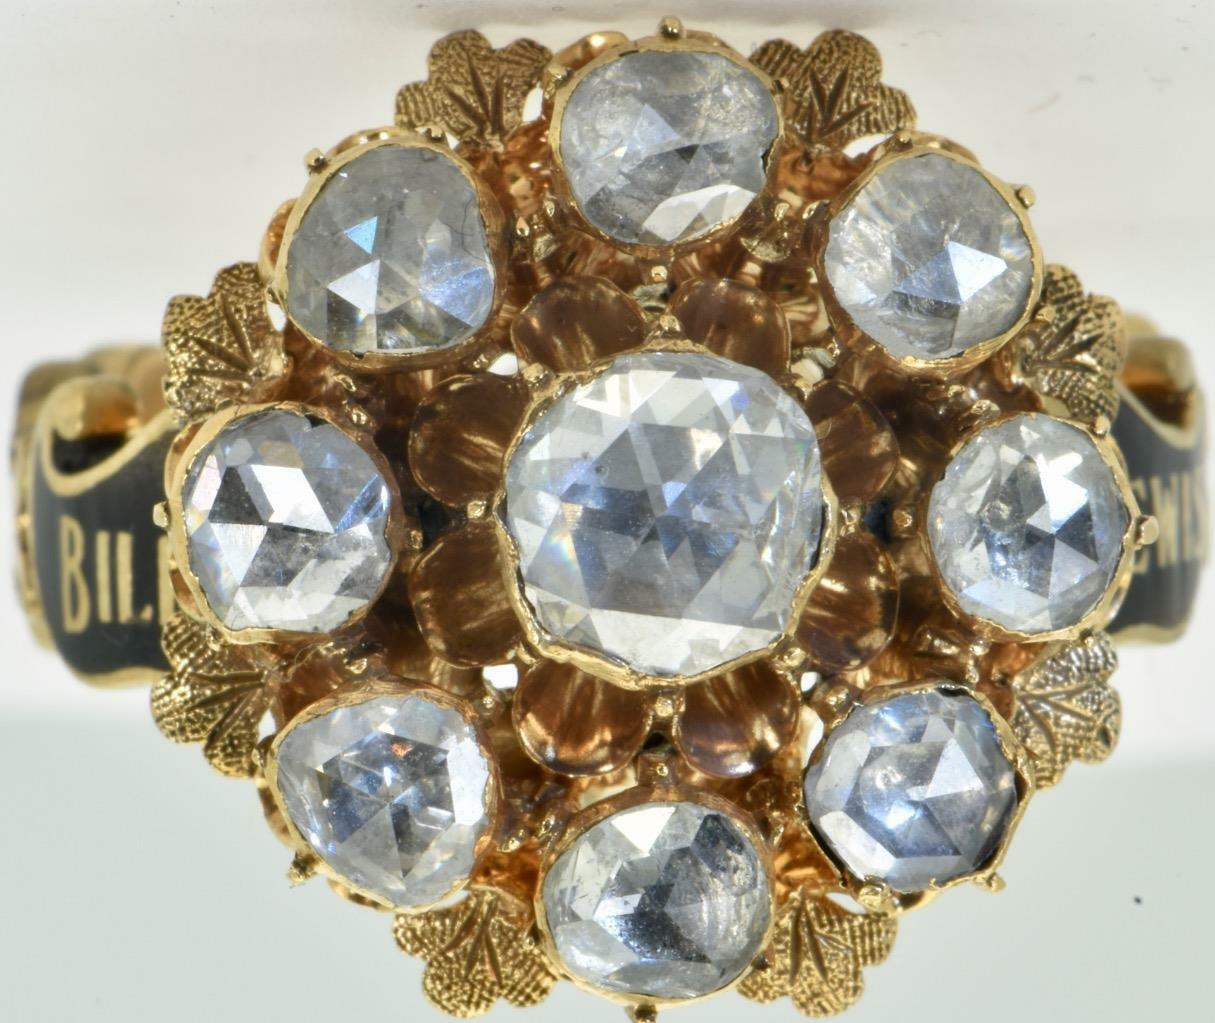 ONE OF A KIND antique Georgian 18k gold,Enamel&3ct Diamonds Mourning Ring c1752